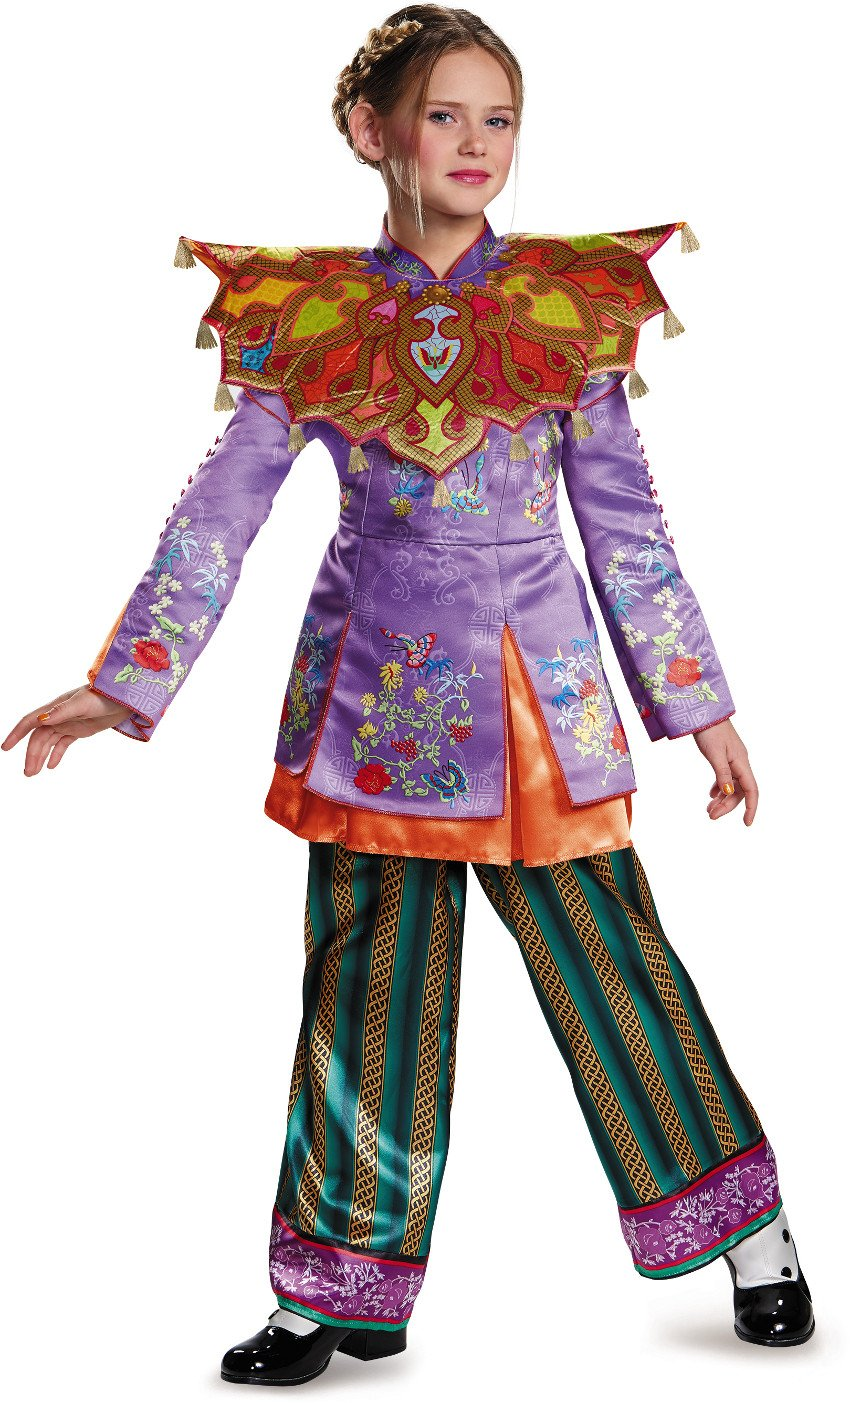 Alice Asian Look Prestige Alice Through The Looking Glass Movie Disney Costume, Large/10-12